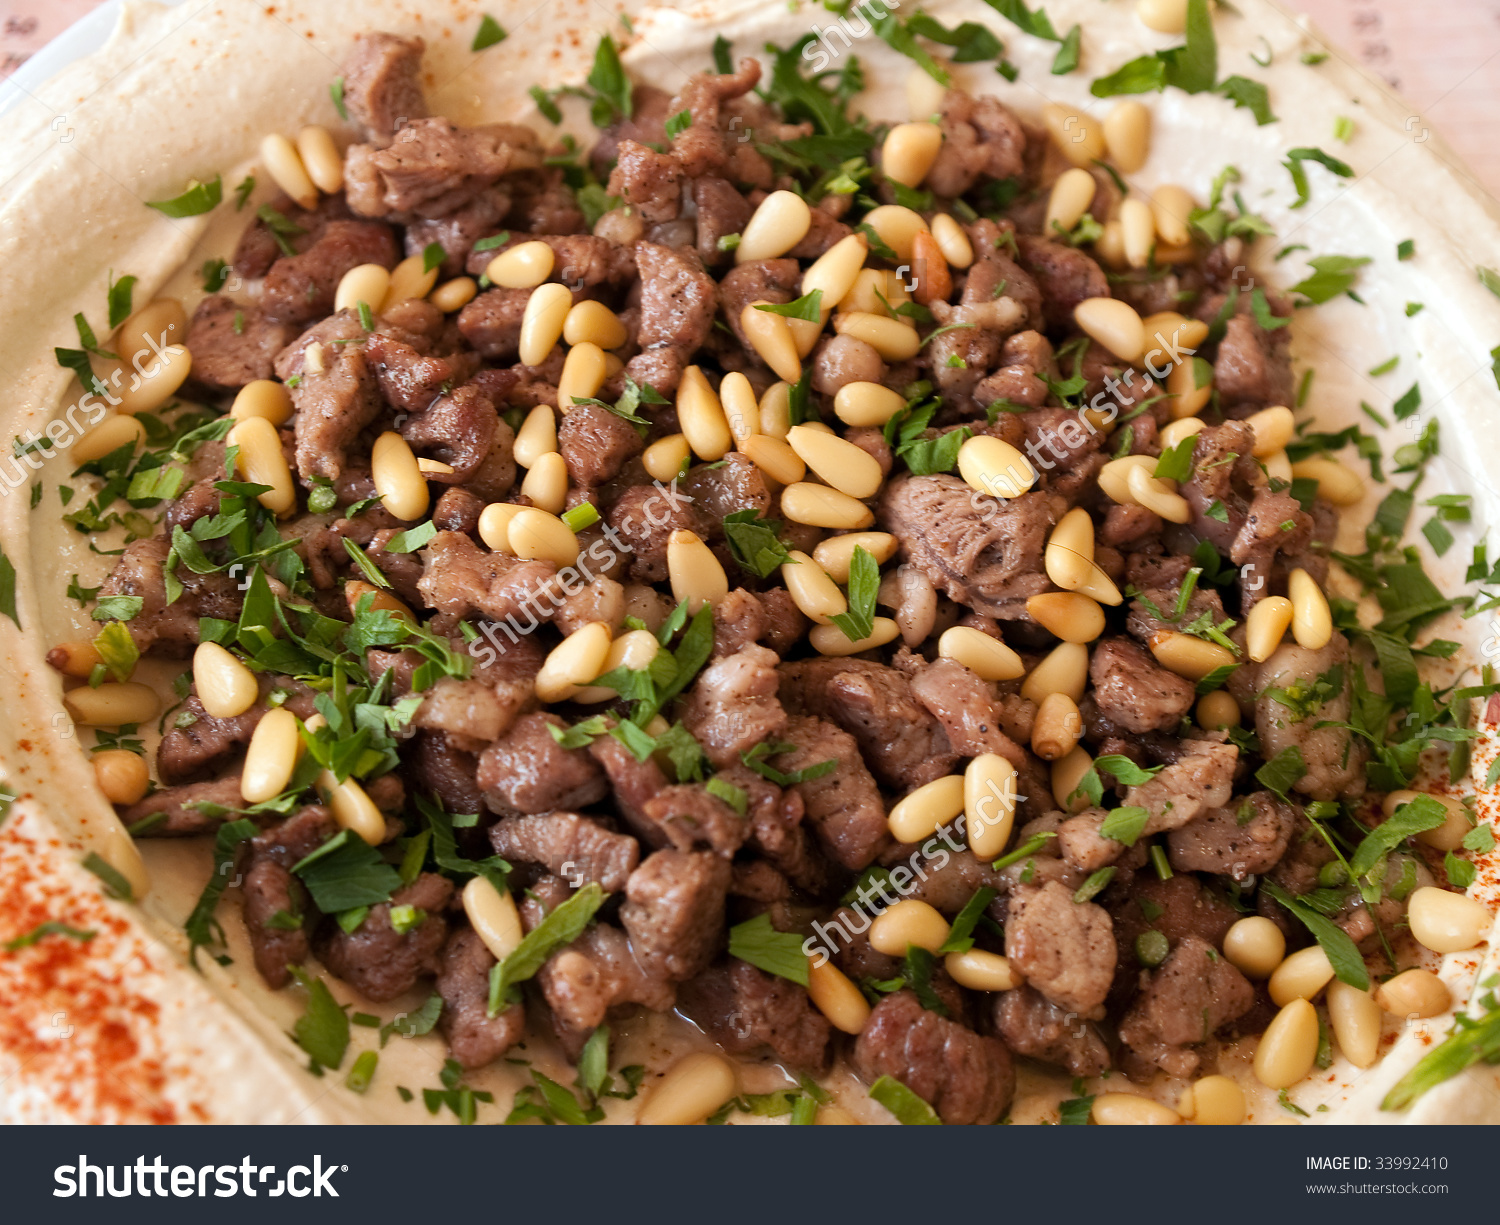 Fresh Hummus Lamb Meat Parsley Middle Stock Photo 33992410.